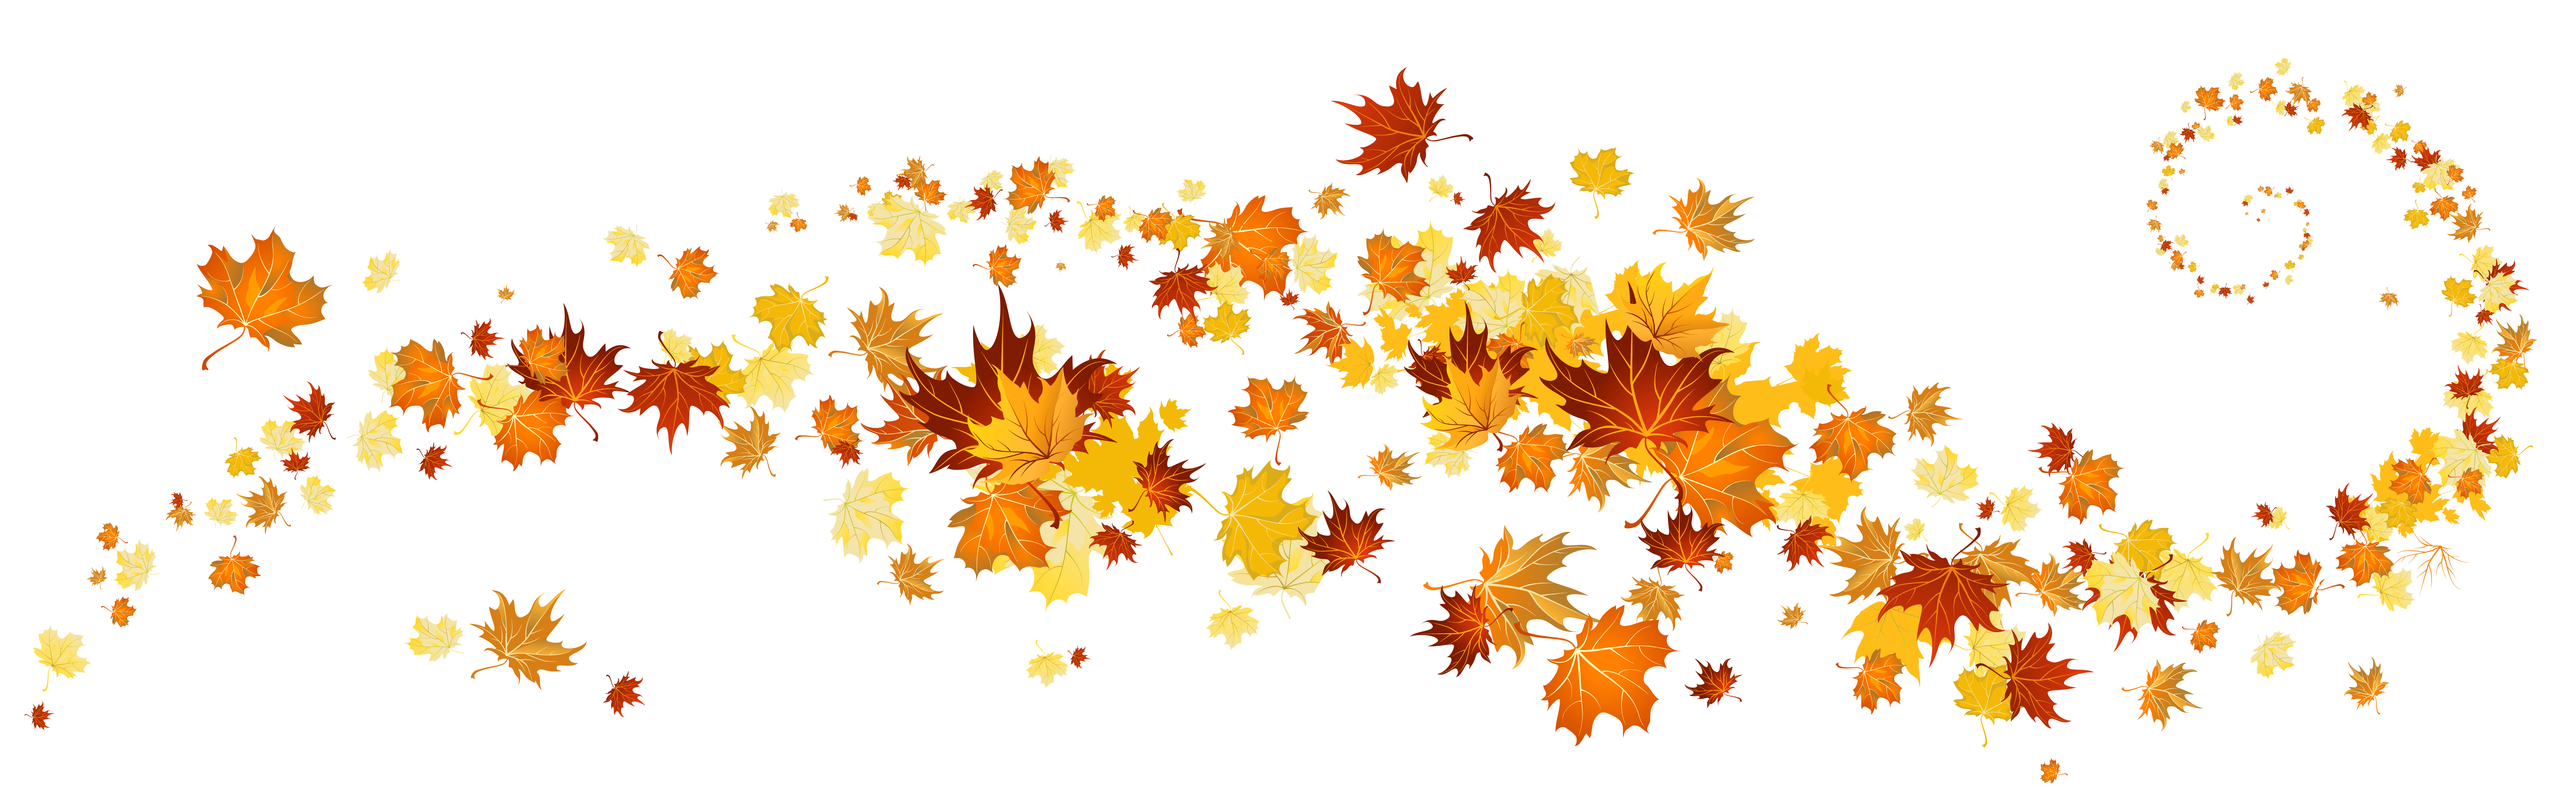 Autumn leaves border png. Decoration clipart gallery yopriceville